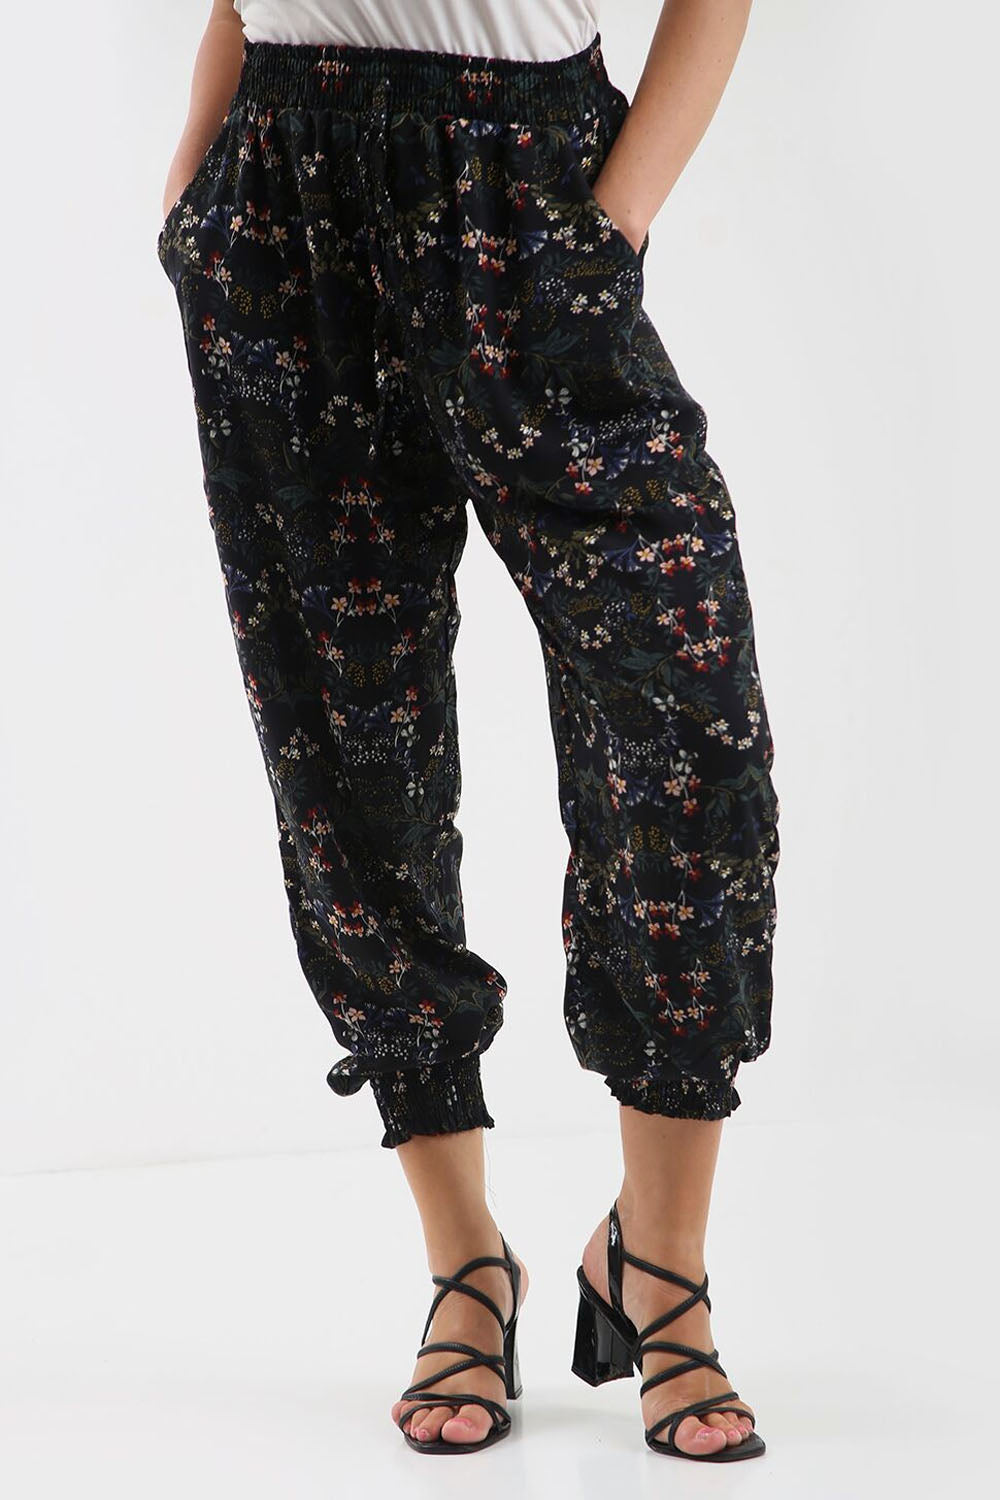 High Waist Black Floral Cuffed Leg Trousers